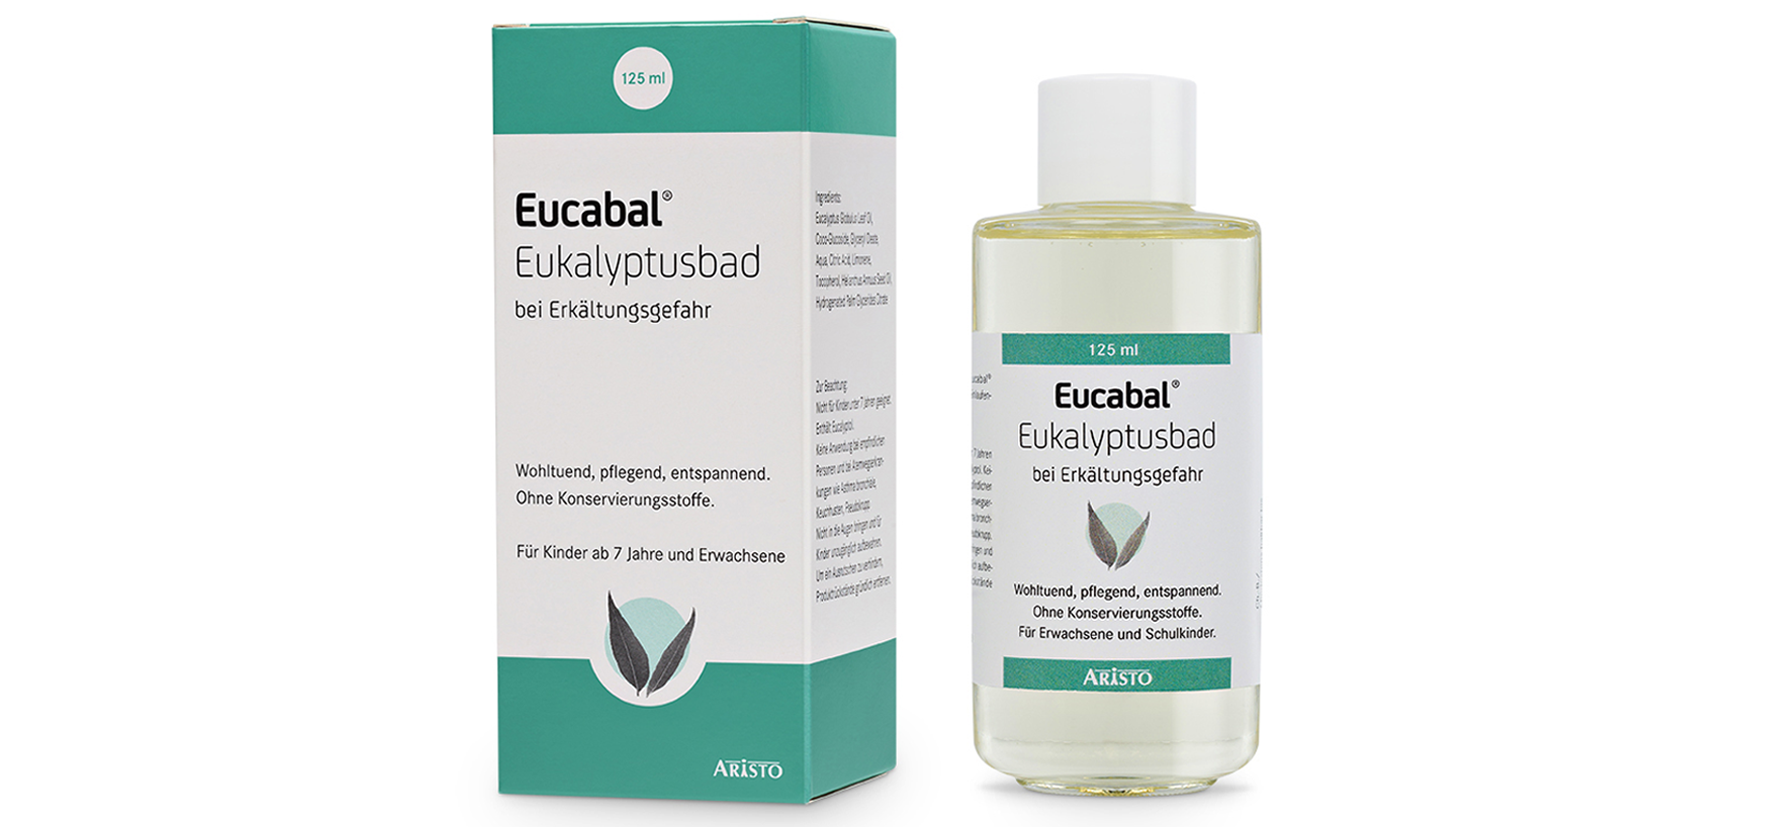 Eucabal syrup: instructions for use